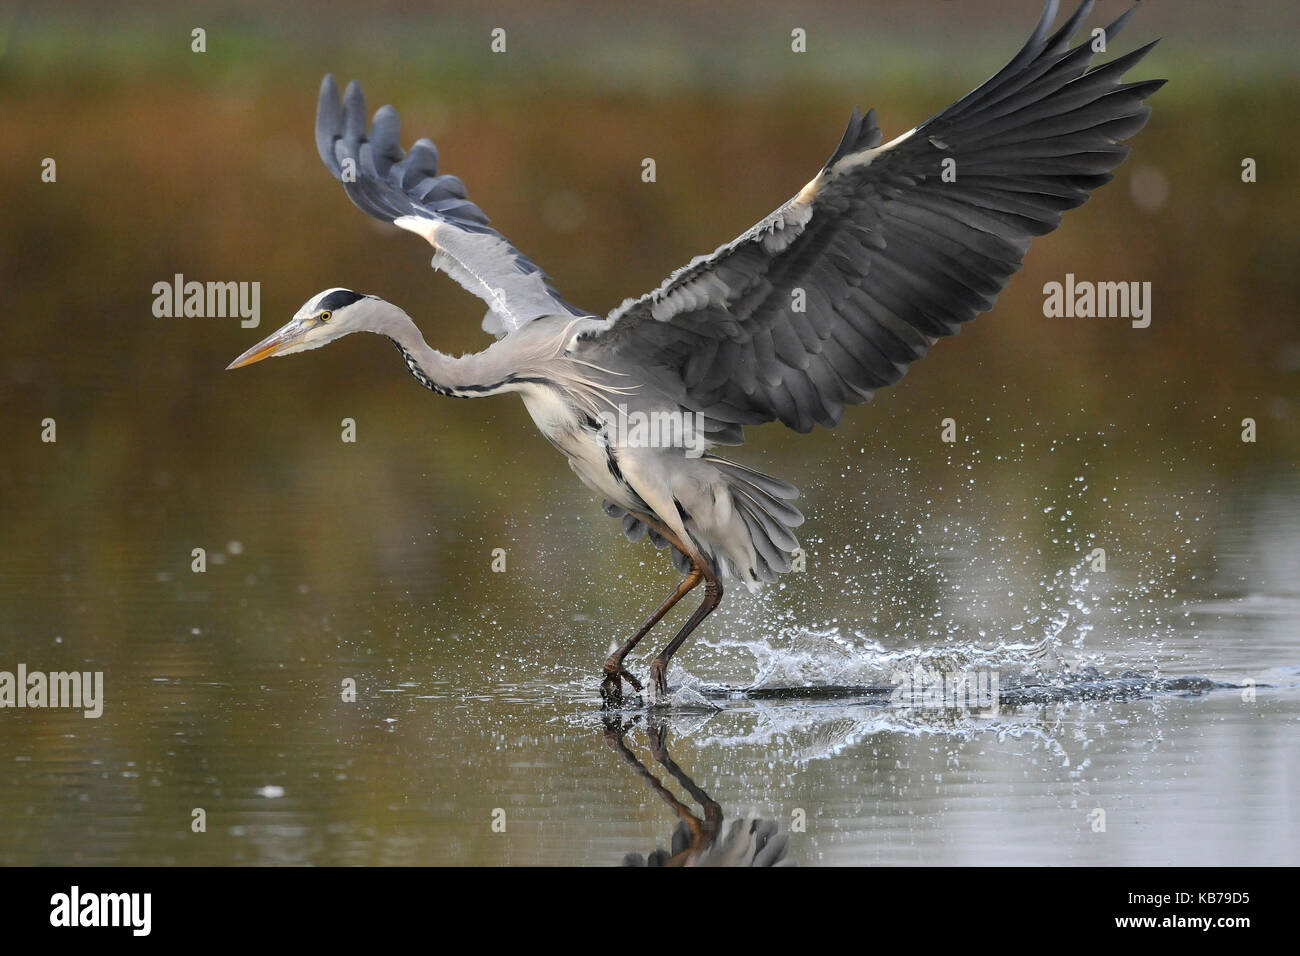 Grey Heron (Ardea cinerea) in flight, hunting, The Netherlands - Stock Image